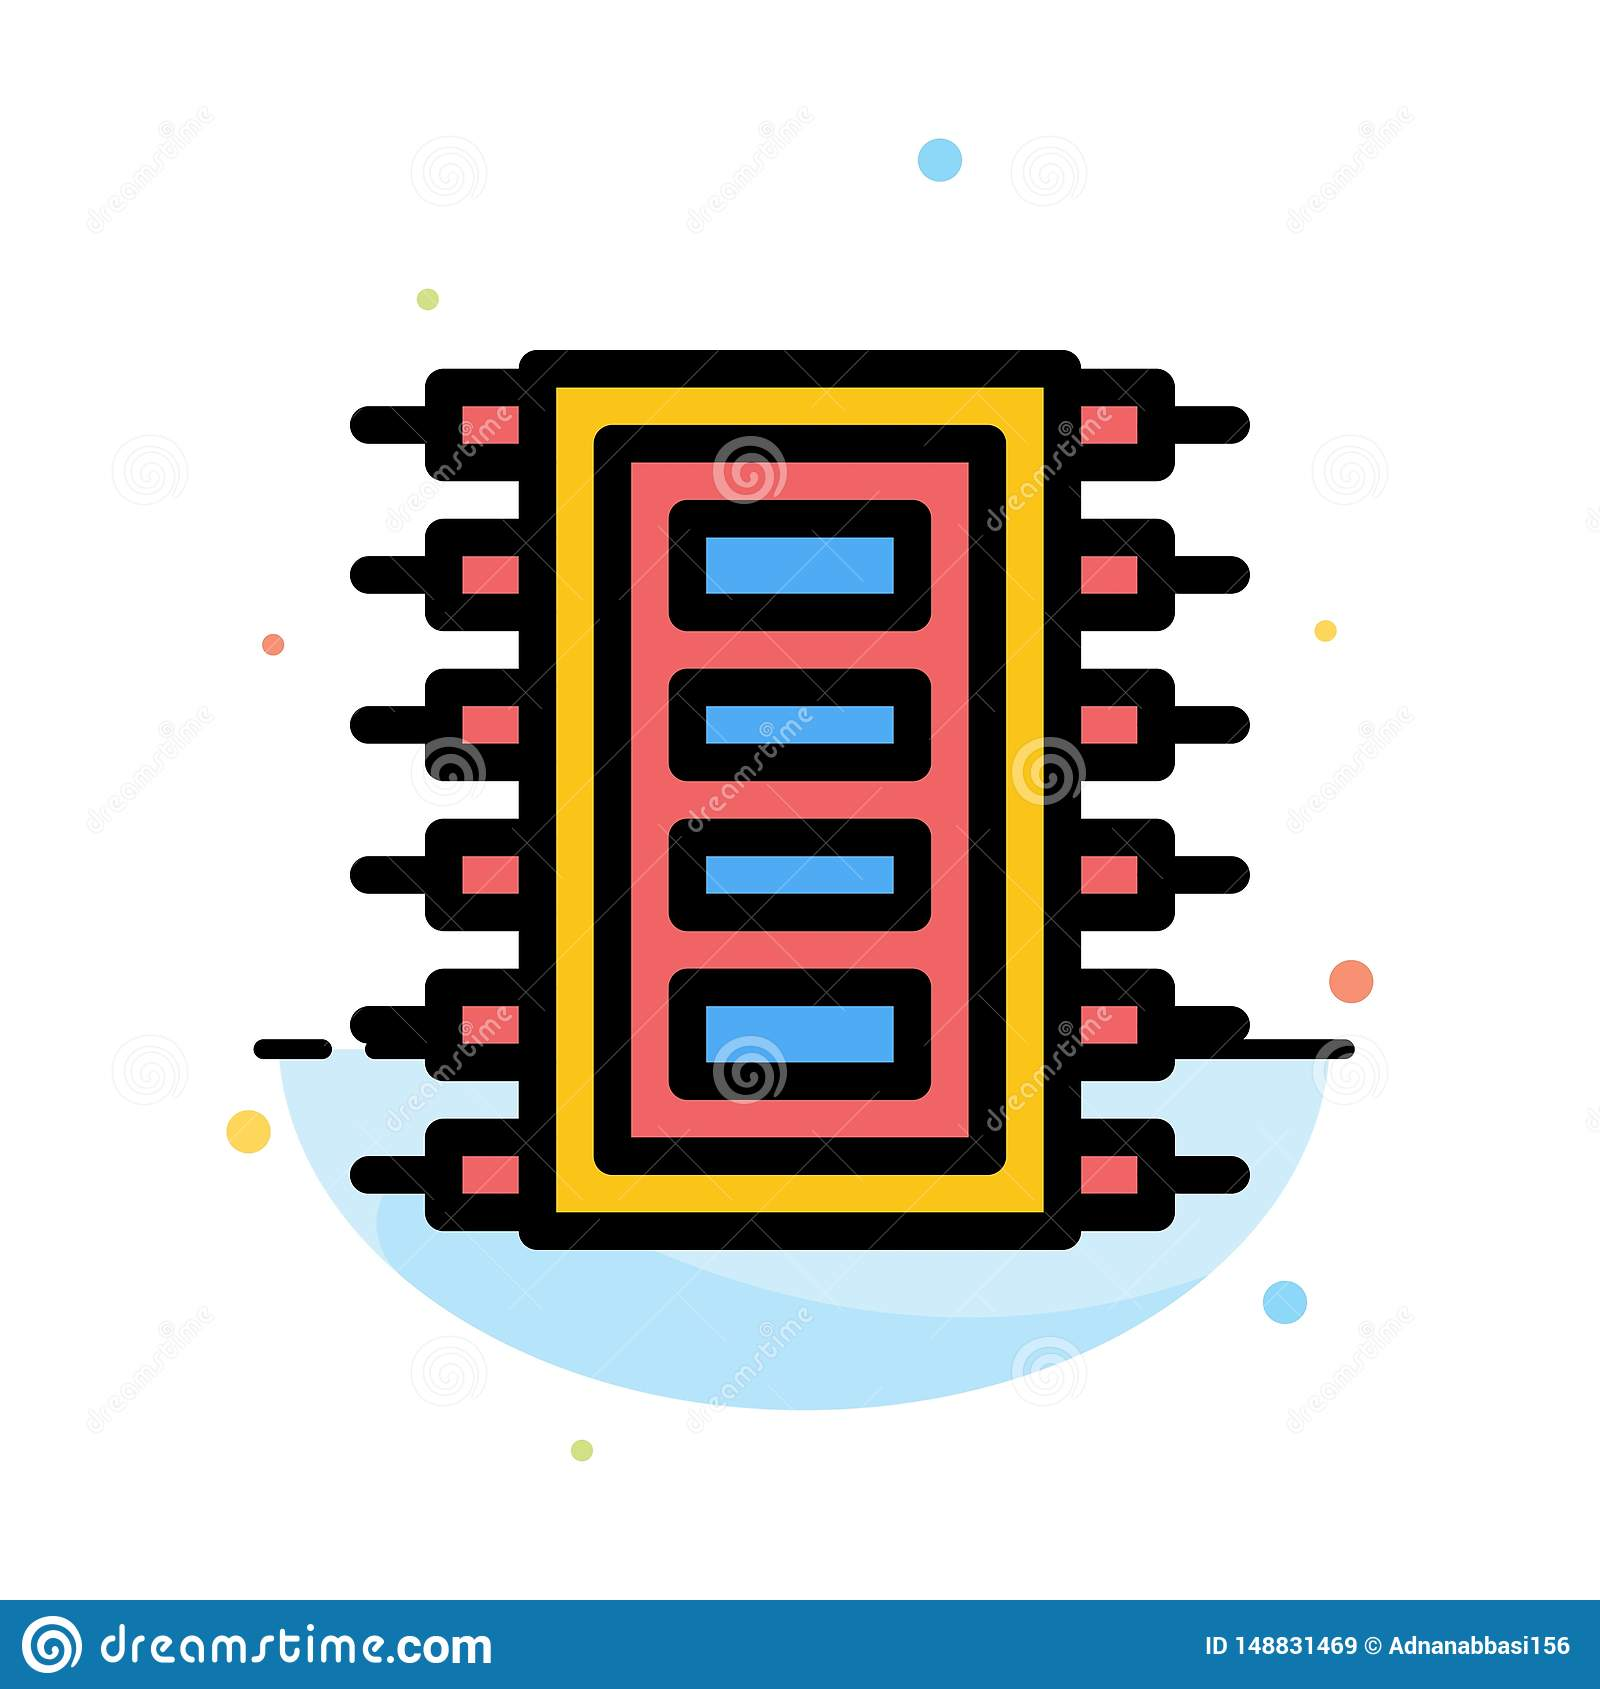 Tech, Hardware, Chip, Computer, Connect Abstract Flat Color Icon Template